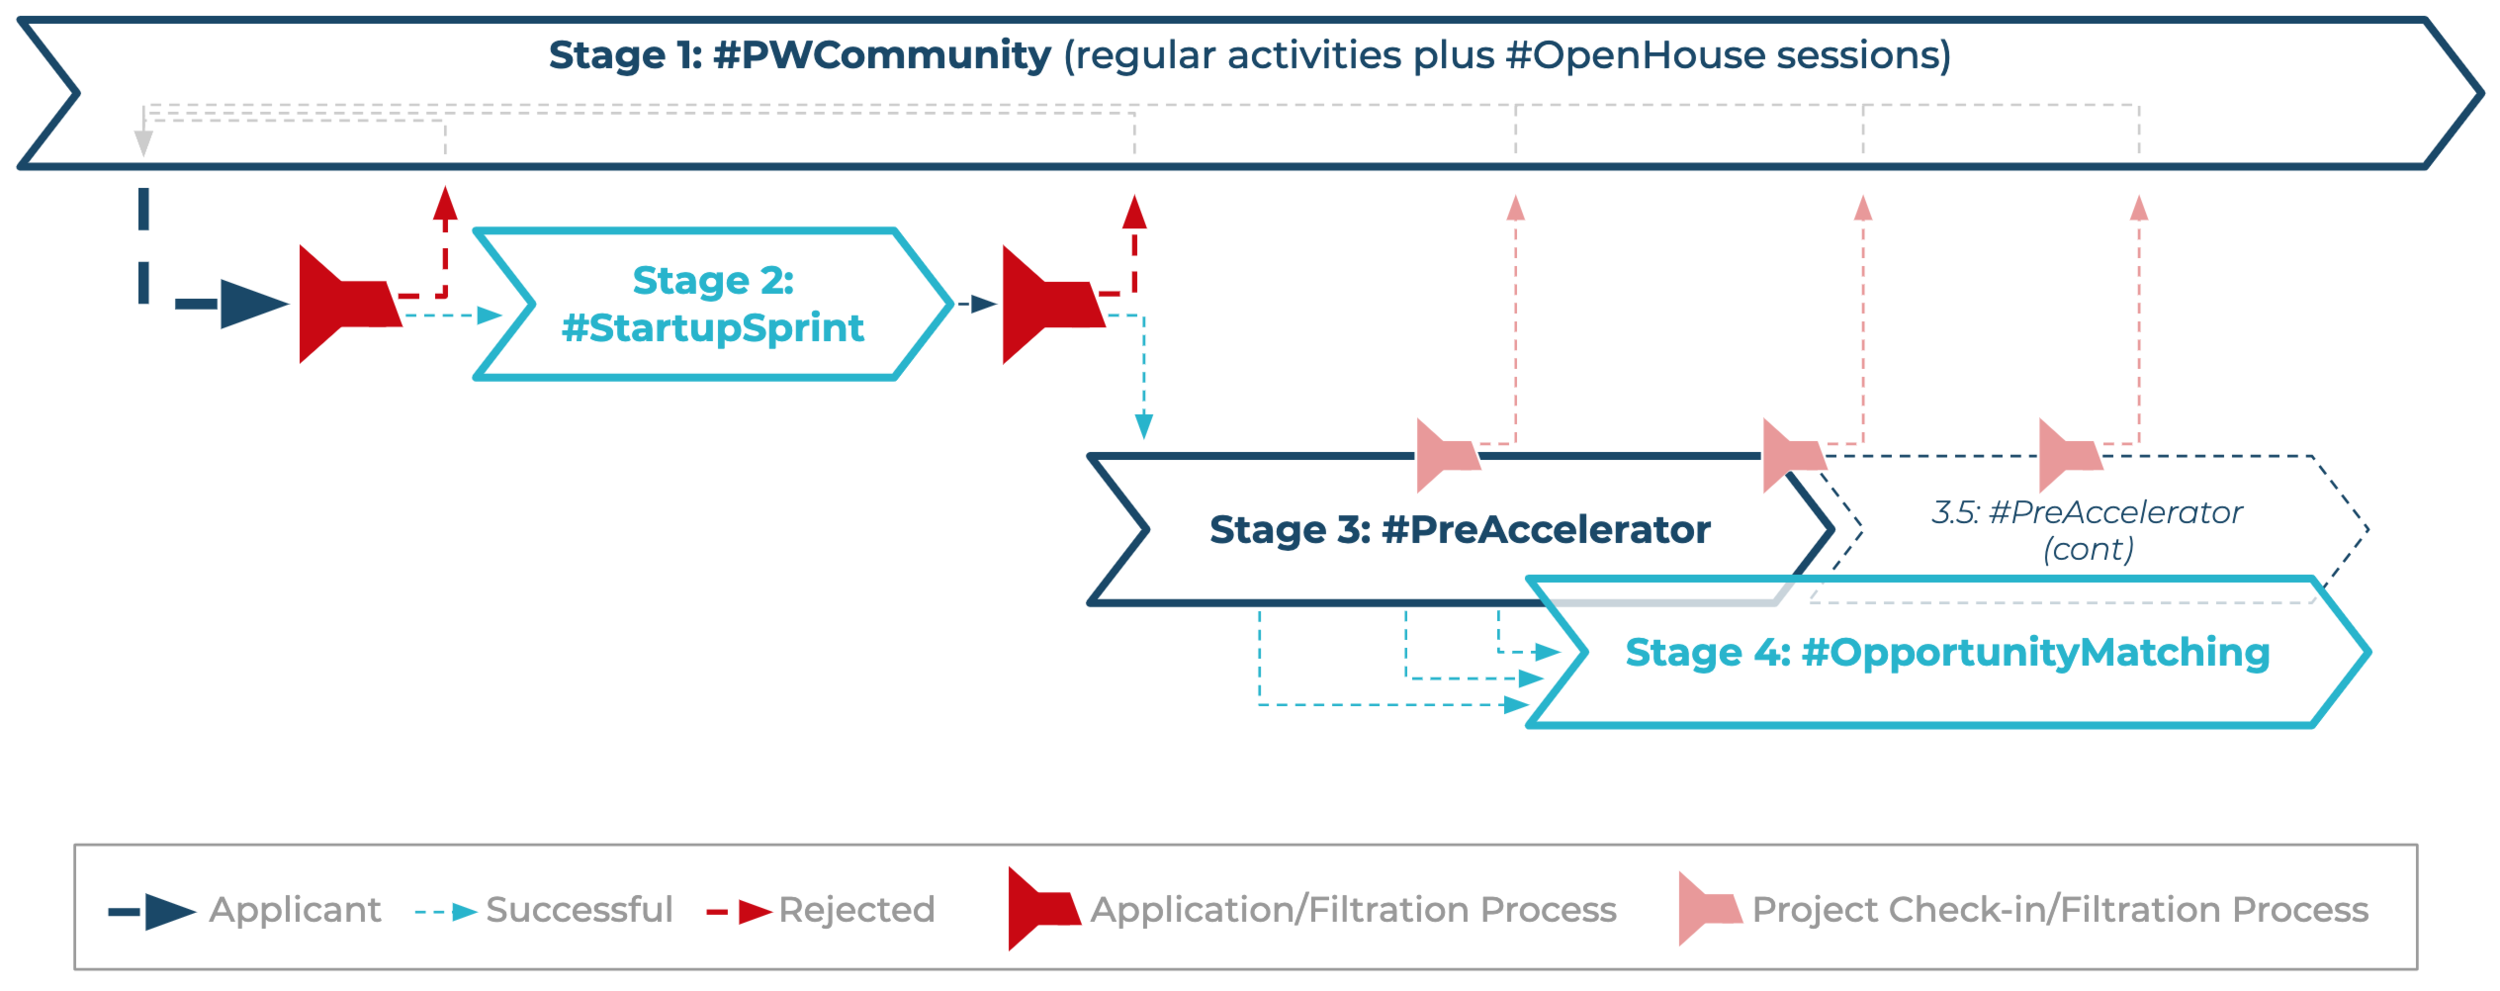 pw-program-approaches-3stages-community.png